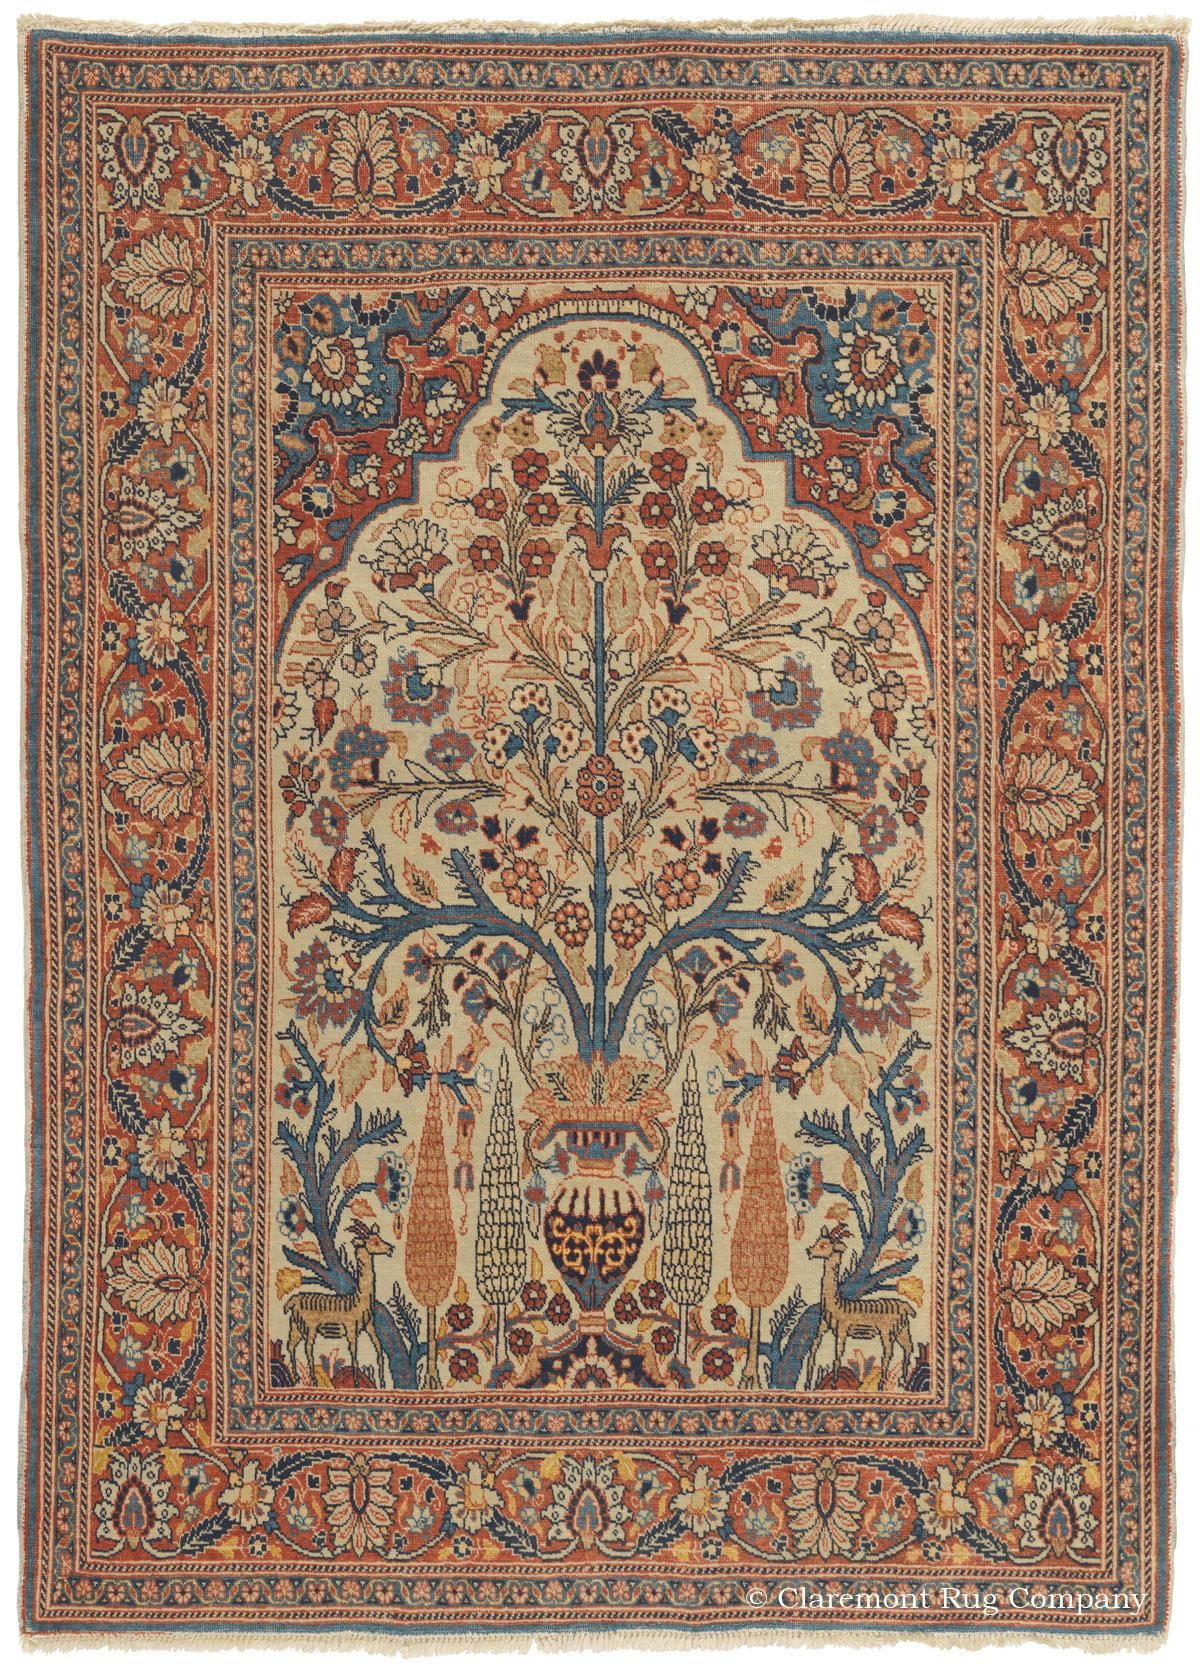 Tabriz Tree Of Life Antique Persian Rug Circa 1900 Elegant Animal Forms Are Sheltered Beneath The Effusive Blossom Laden Boughs In This Exquisite 19th